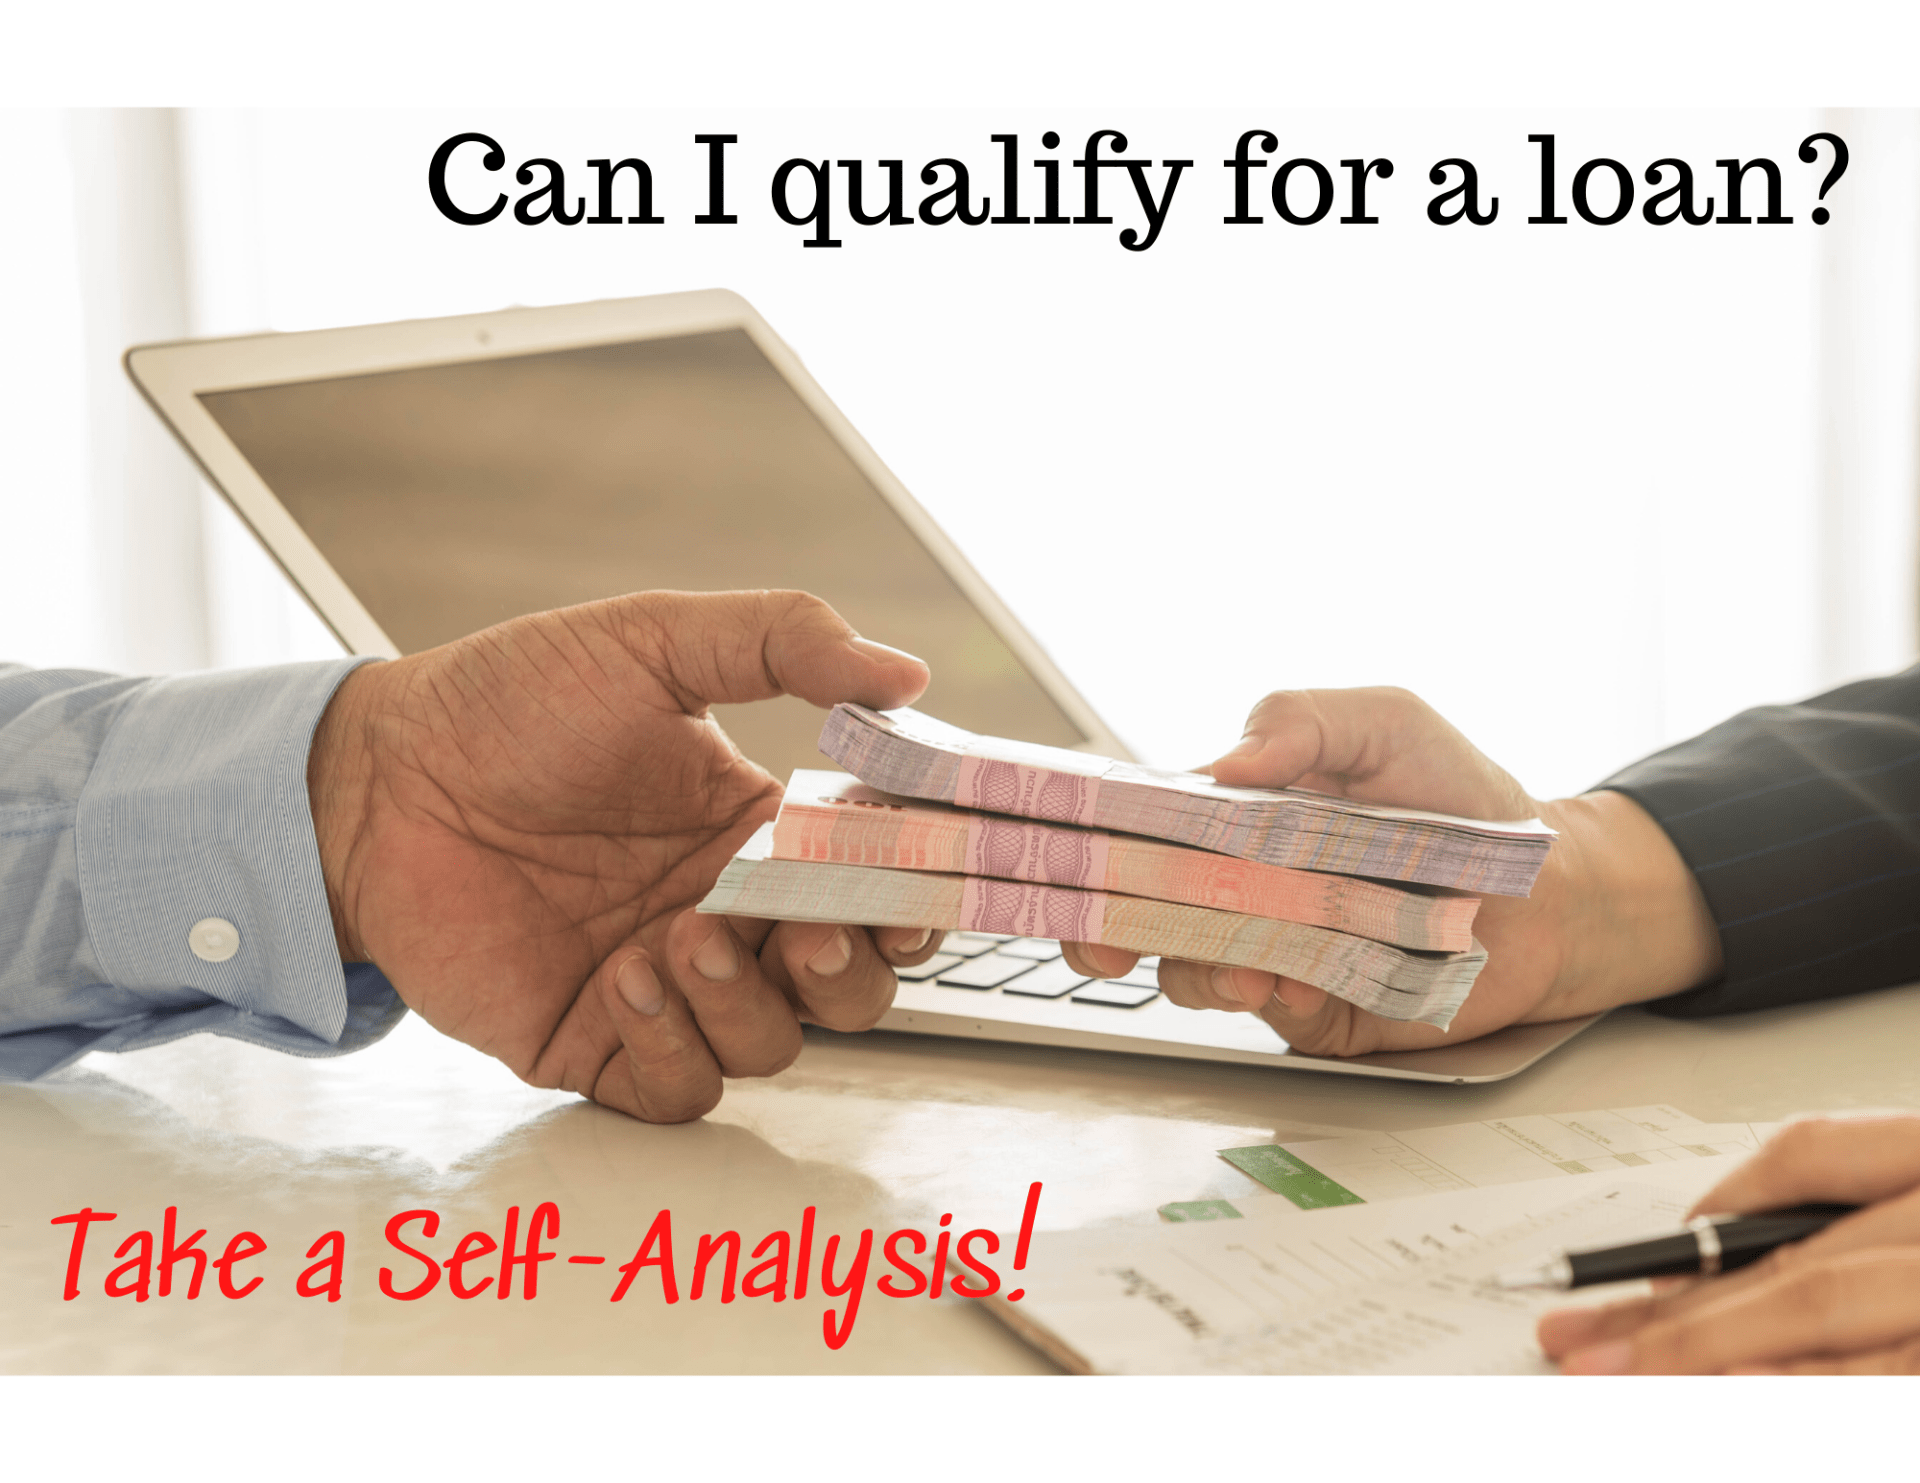 Can-I-qualify-for-a-loan_graphic-w1920.png